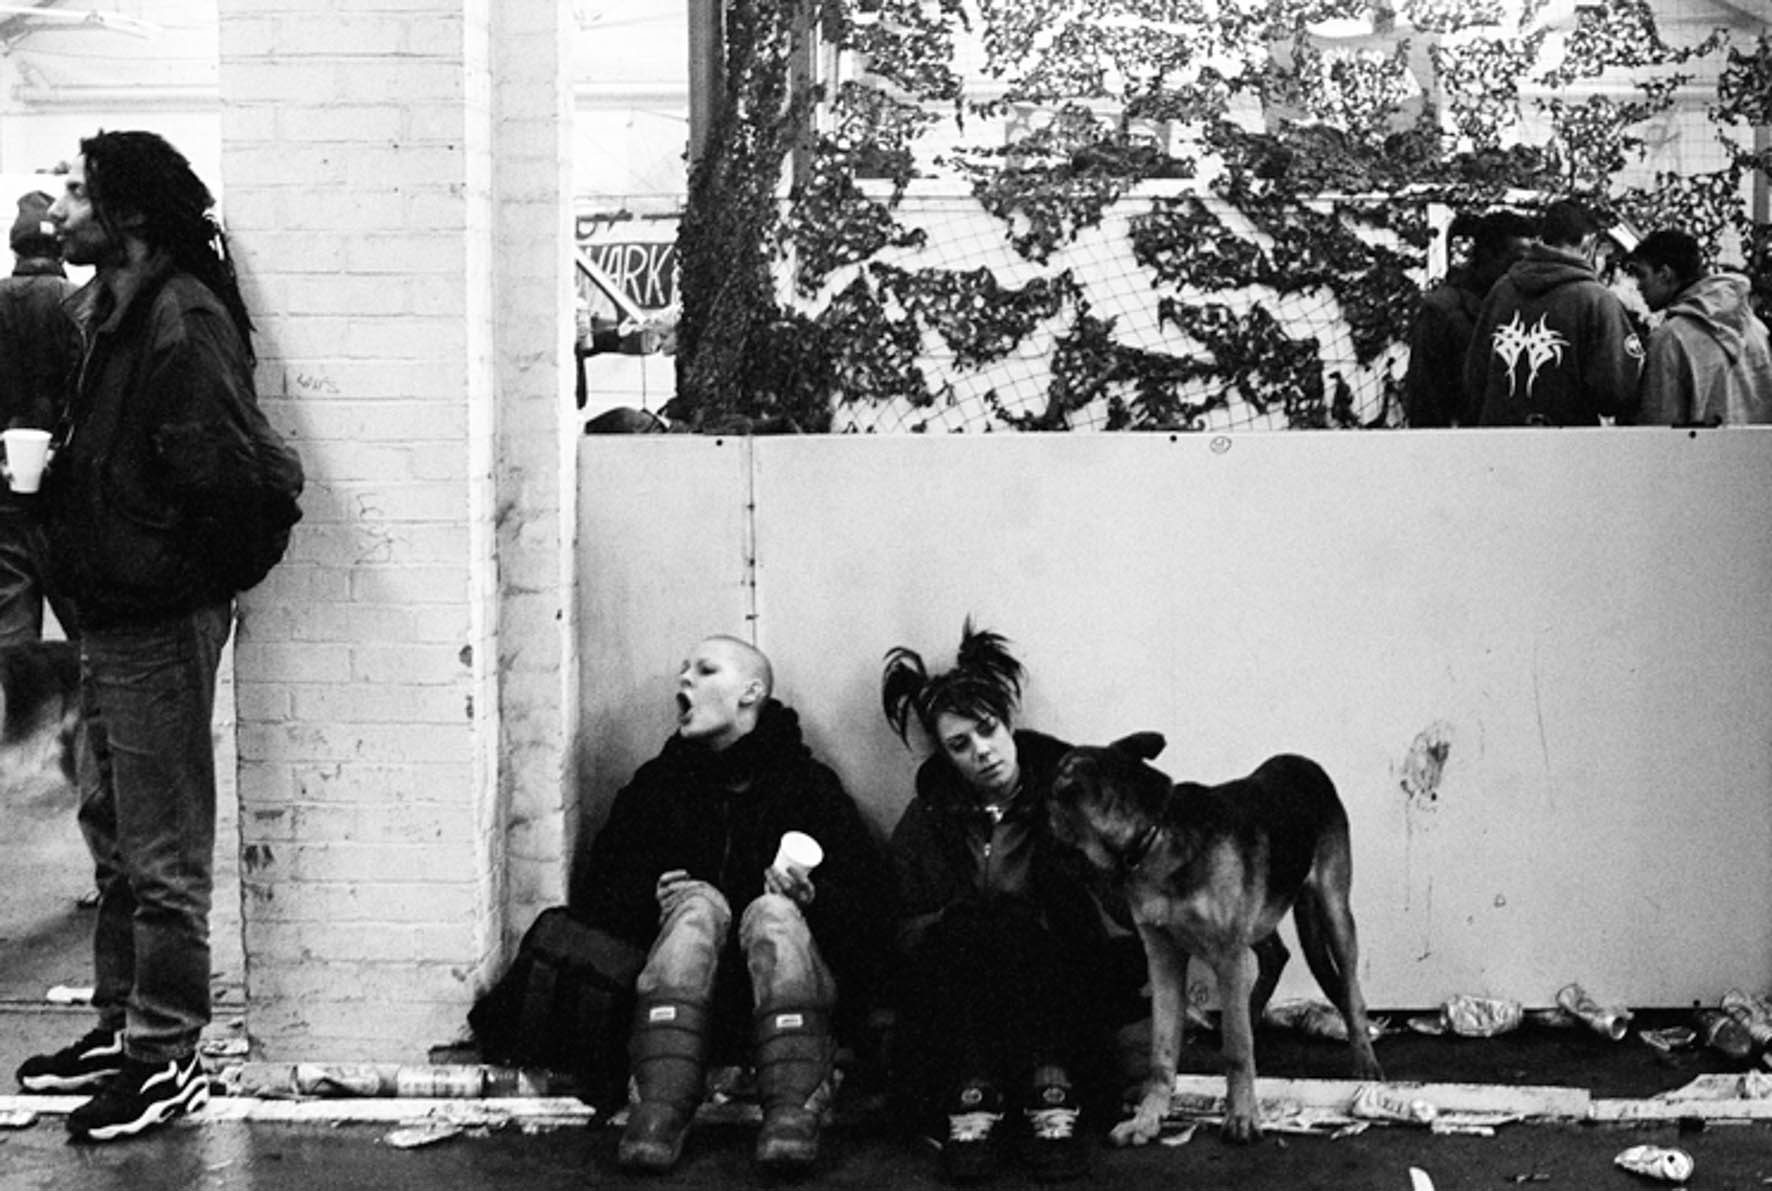 Molly Macindoe - Sally, Belinda and Knickers the dog, Acton, London, 1999